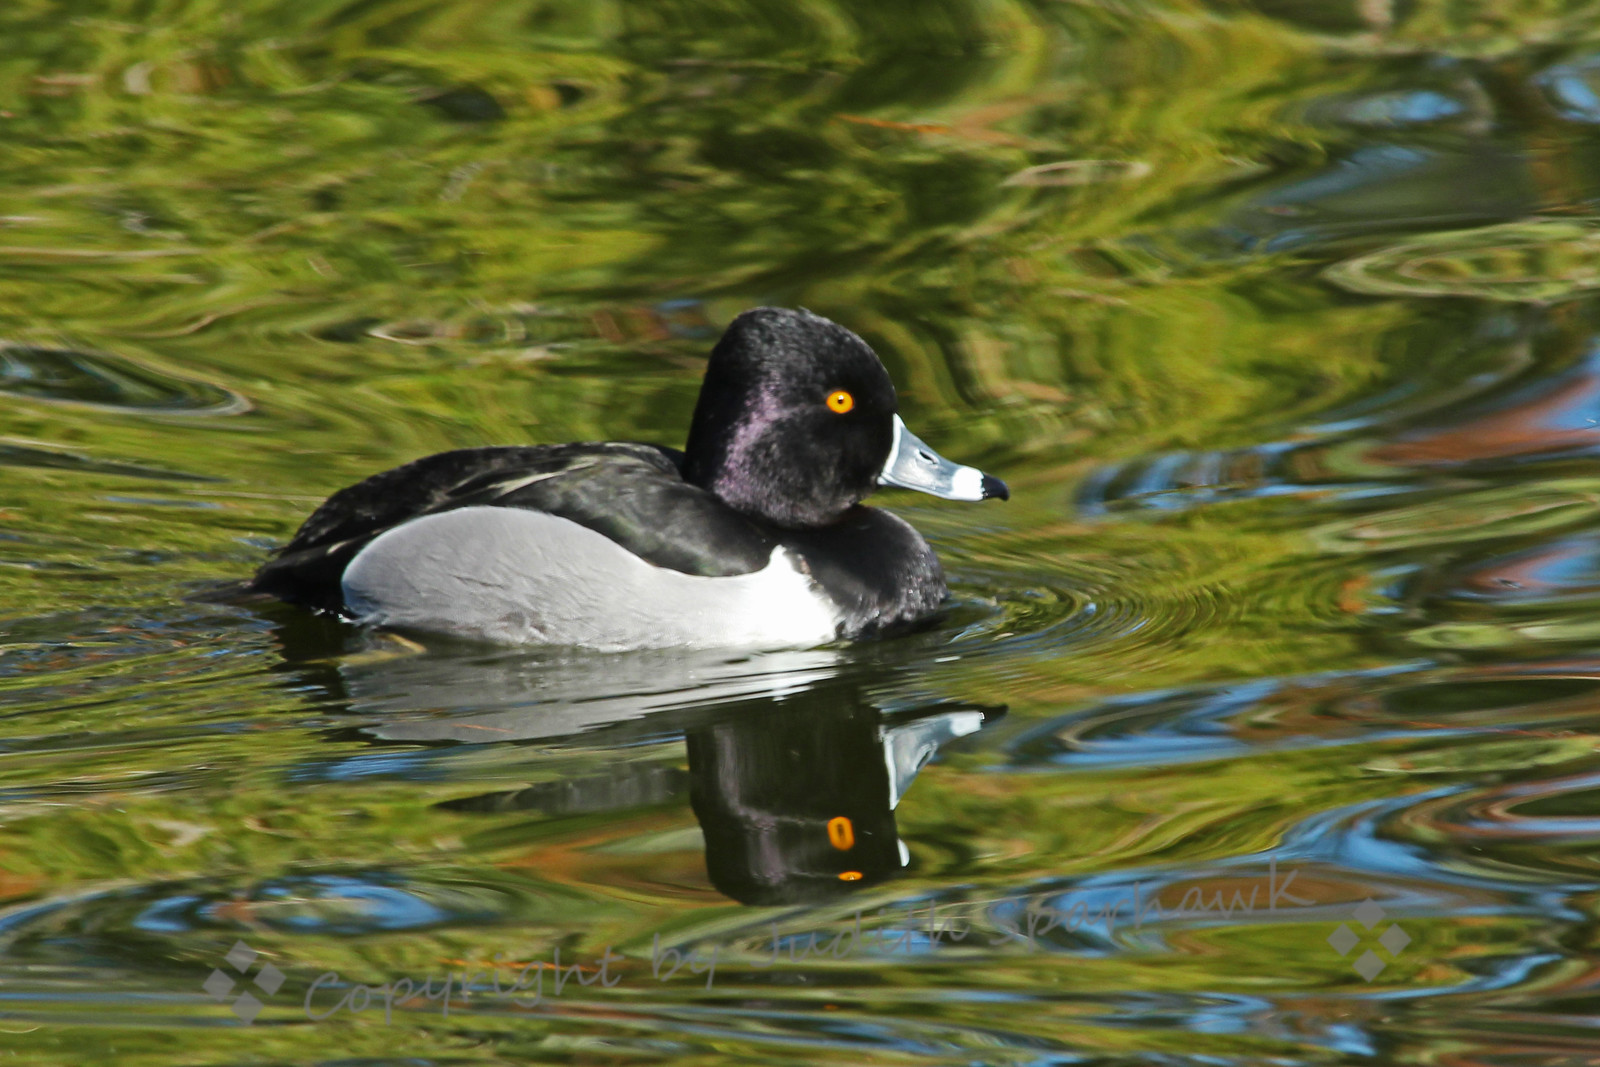 Ring-necked Duck with Reflections ~ The reflections on the lake surface adds color and interest to this pretty duck.